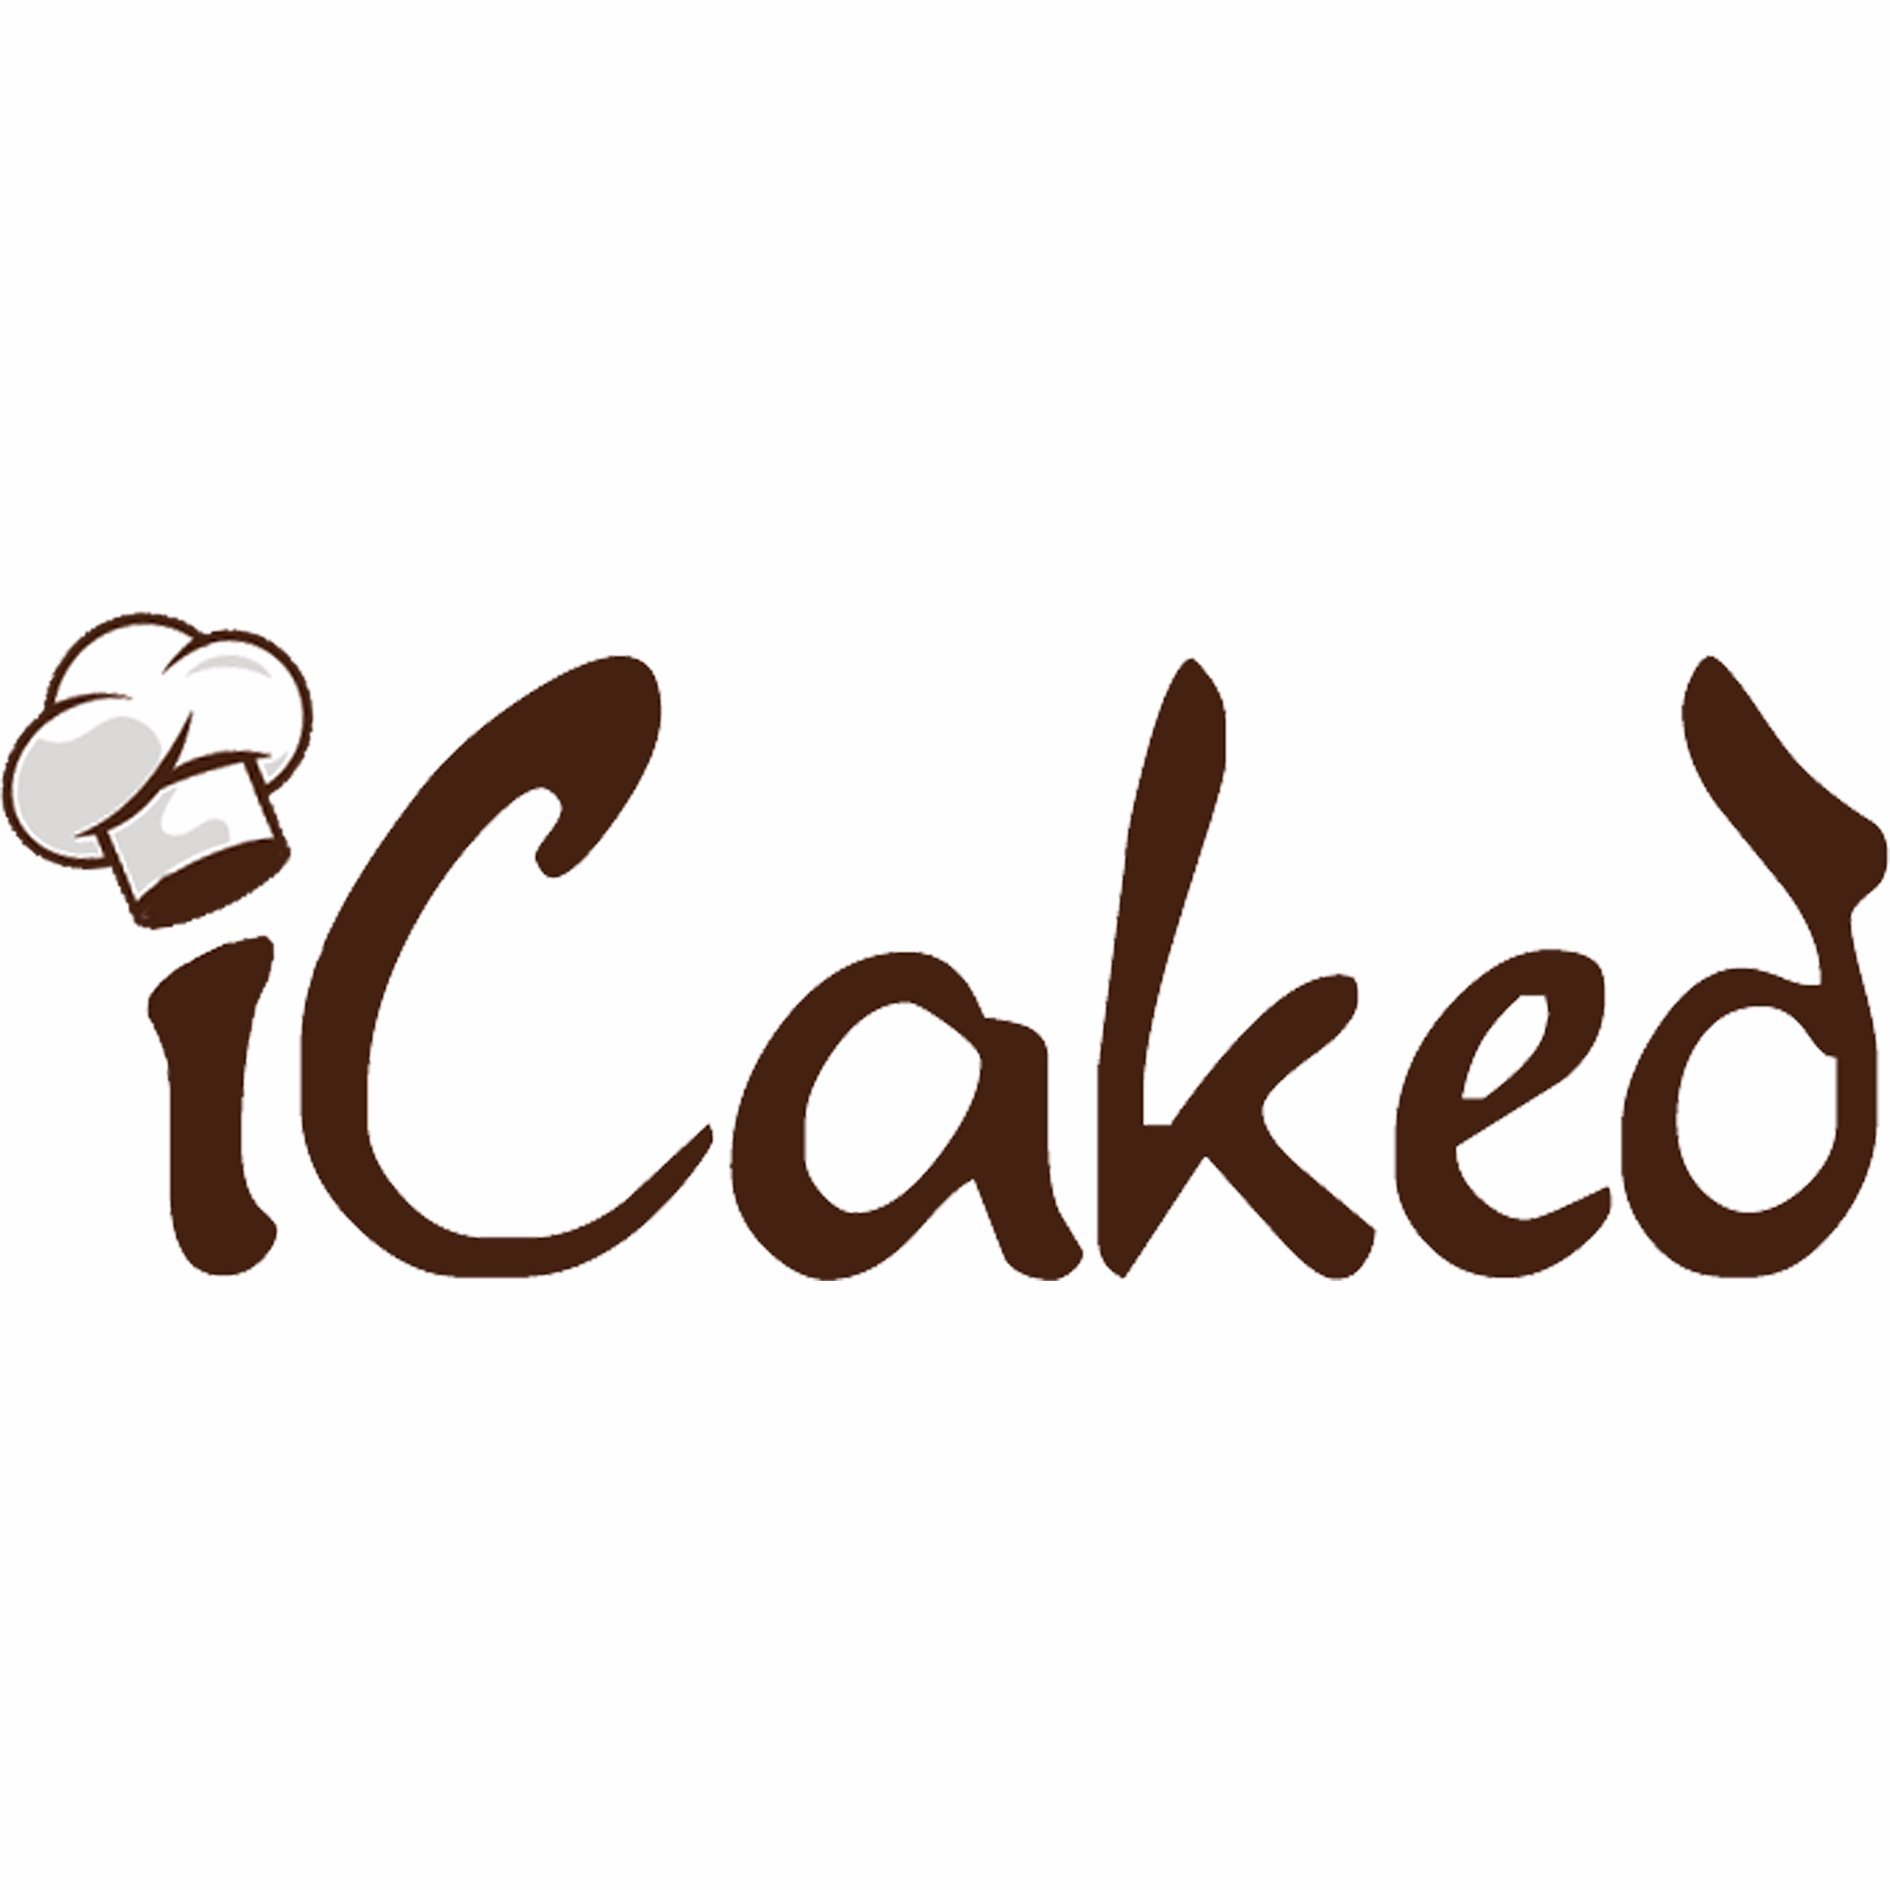 iCaked